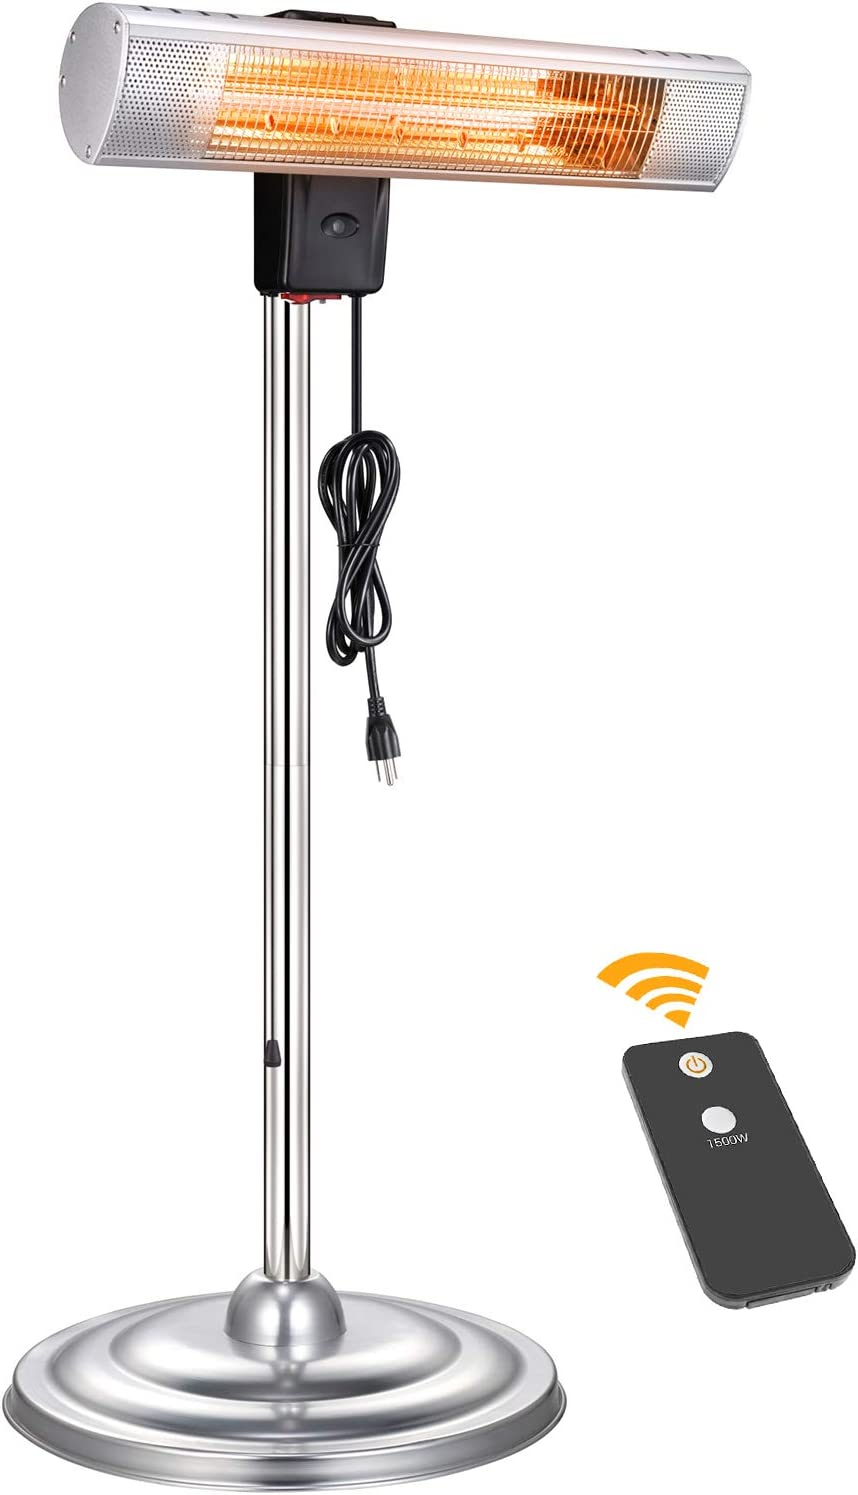 Kismile Outdoor Electric Patio Heater, Freestanding Infrared Heater with Height Adjustable,Remote Control for Patio,Lawn,home and Garden